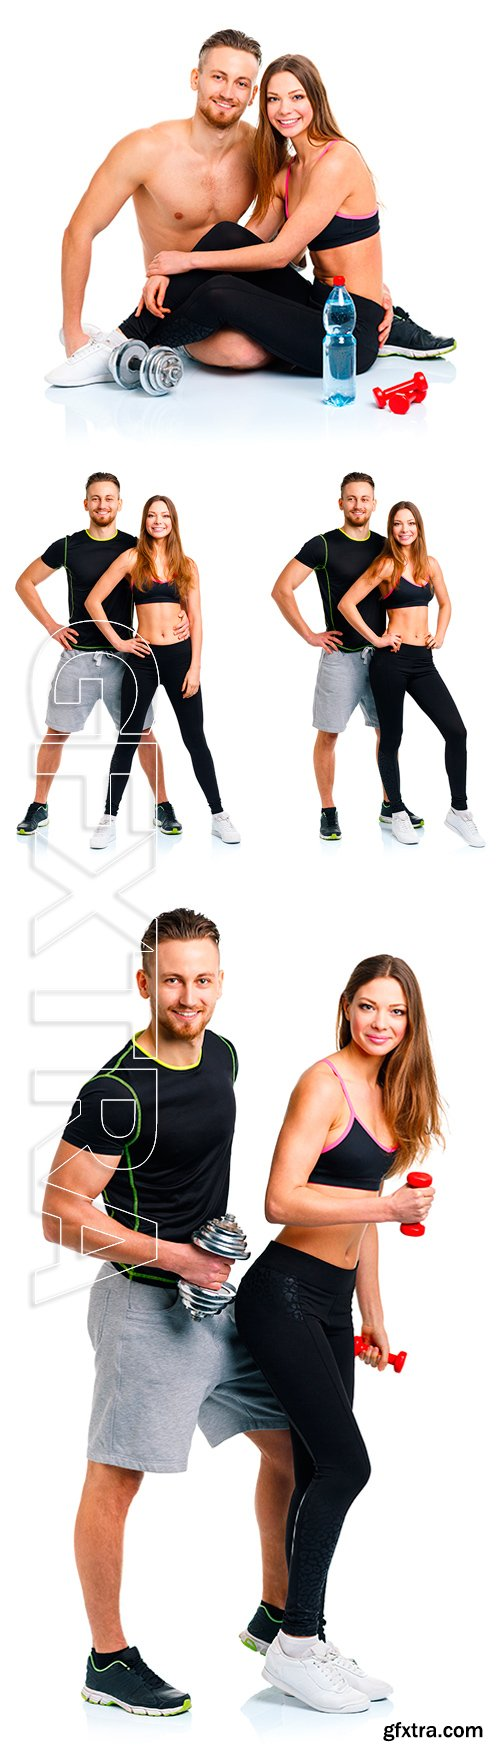 Stock Photos - Sport couple - man and woman with dumbbells on the white background.